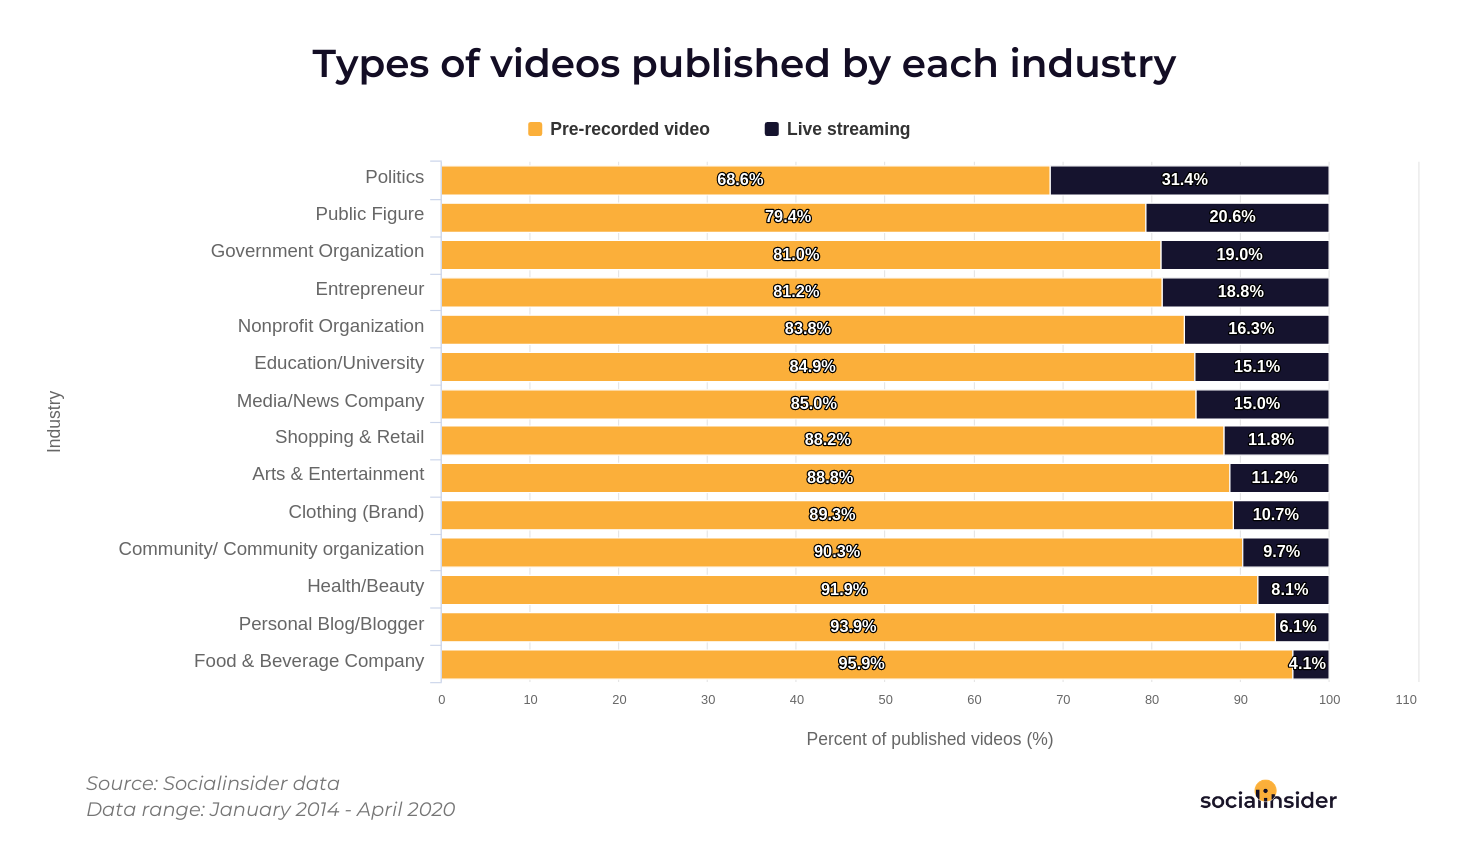 What types of videos each industry publishes.